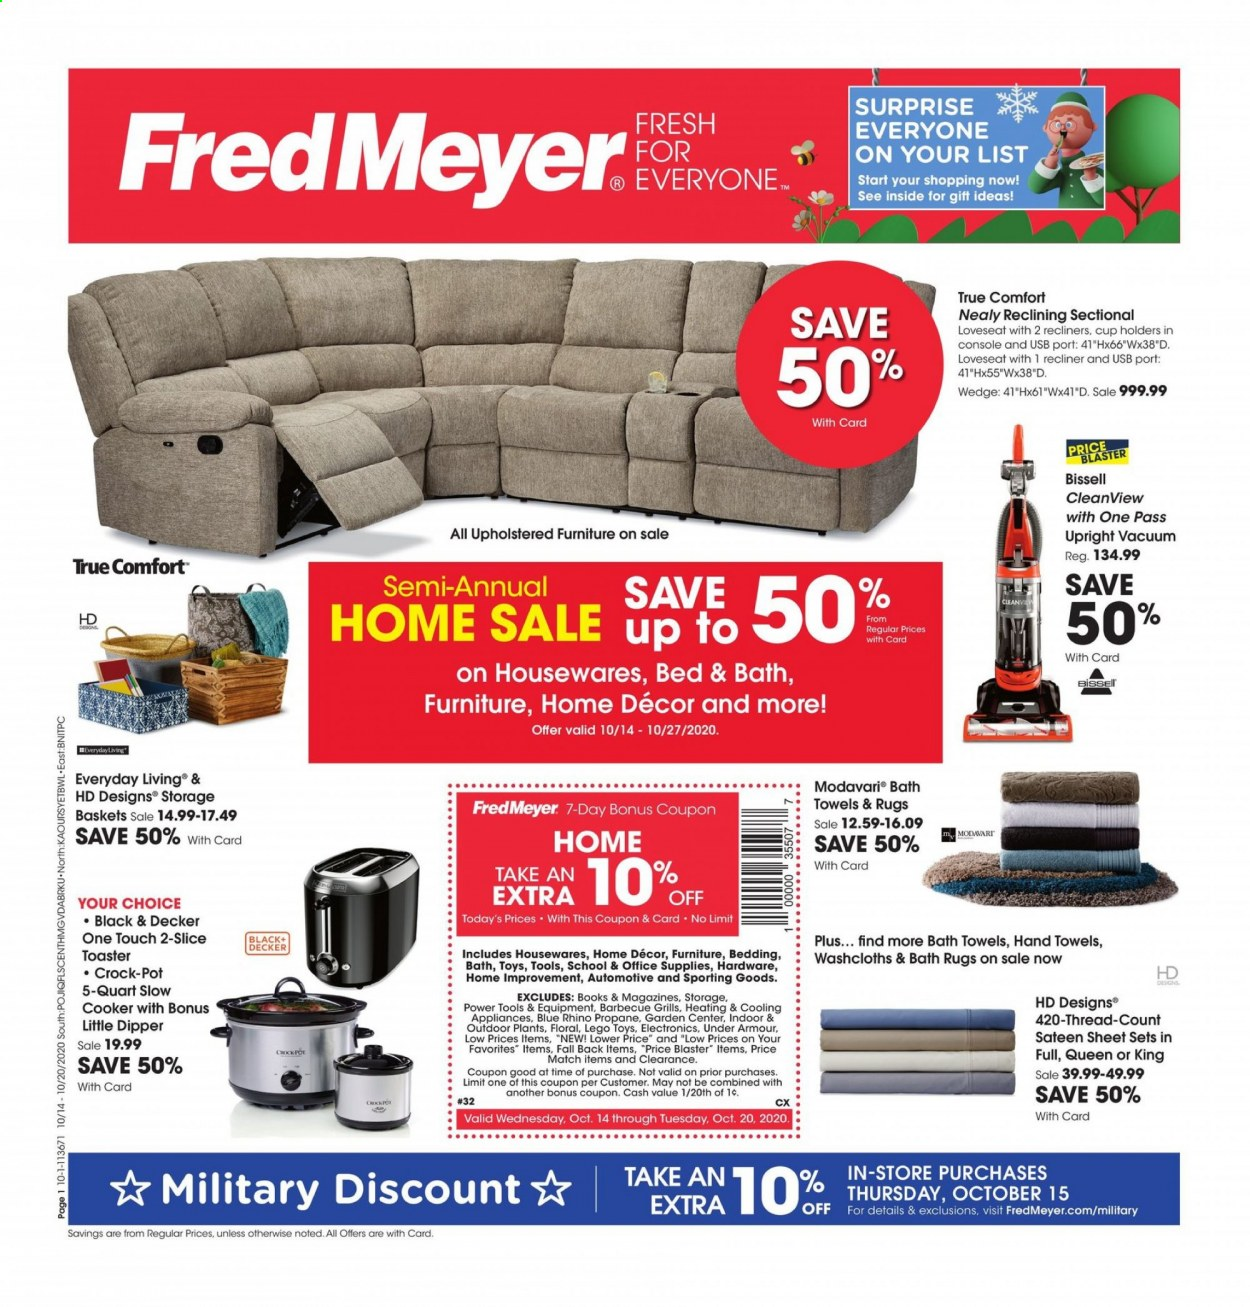 Fred Meyer Flyer - 10.14.2020 - 10.20.2020 - Sales products - basket, bath, bath towel, bed, bedding, bissell, console, cup, furniture, lego, loveseat, recliner, rug, sateen, sectional, sheet, towel, under armour, vacuum, pot, toys, power tools, toaster, blaster, thread, crock pot, usb, barbecue, tools, rhino. Page 1.